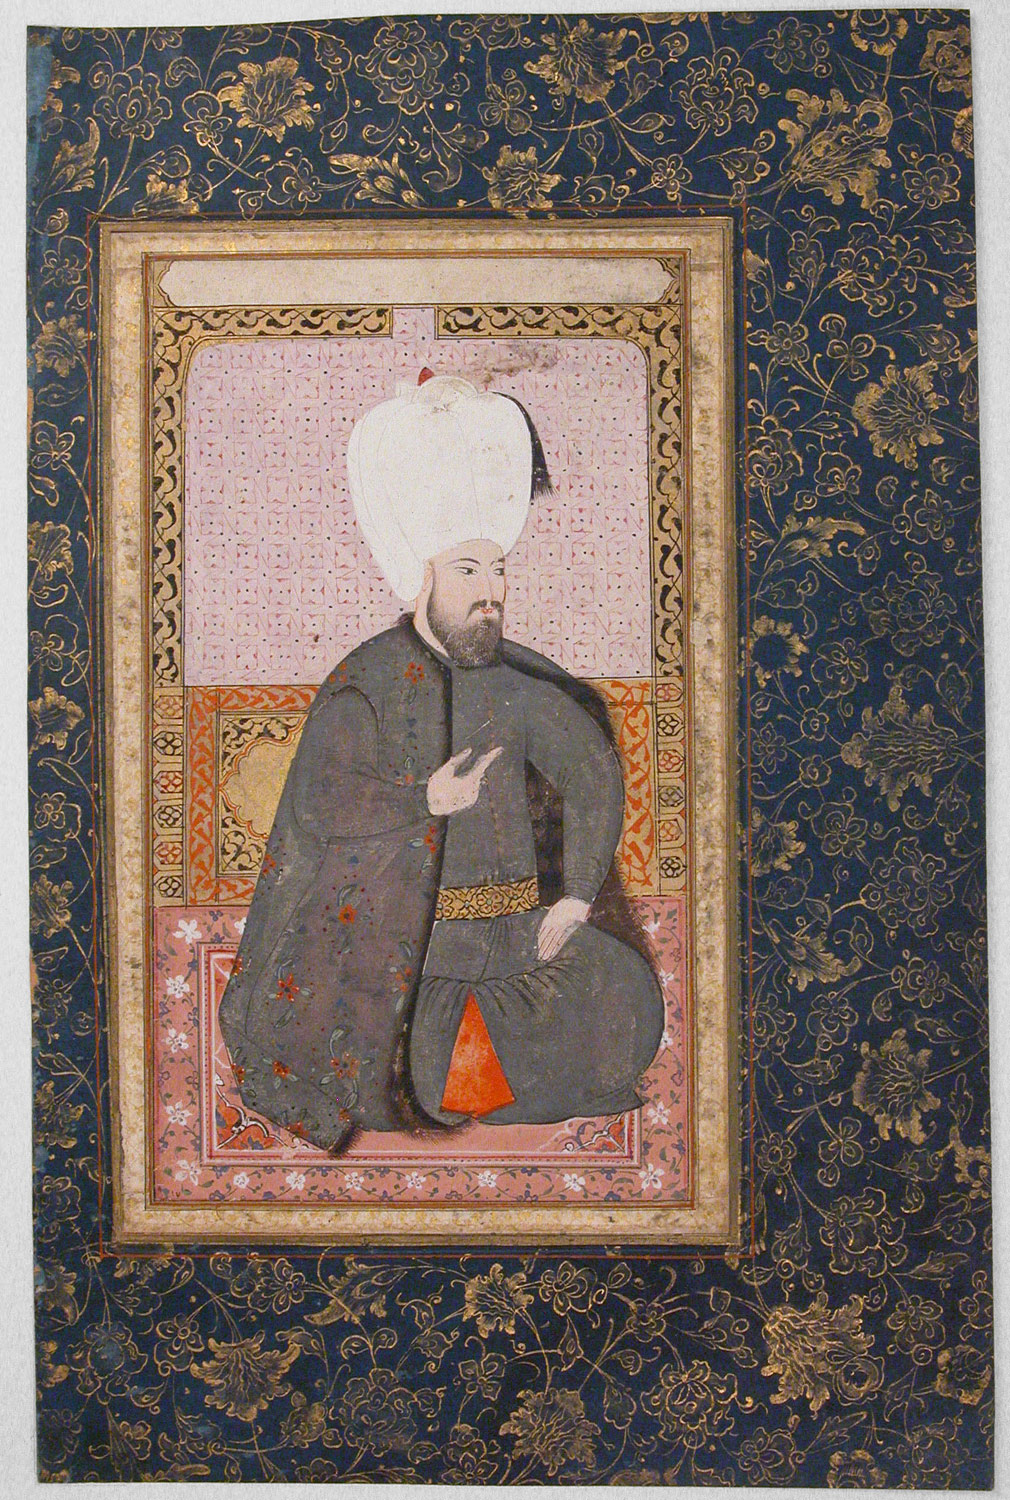 the art of the ott s after 1600 essay heilbrunn timeline of portrait of sultan ahmet i r